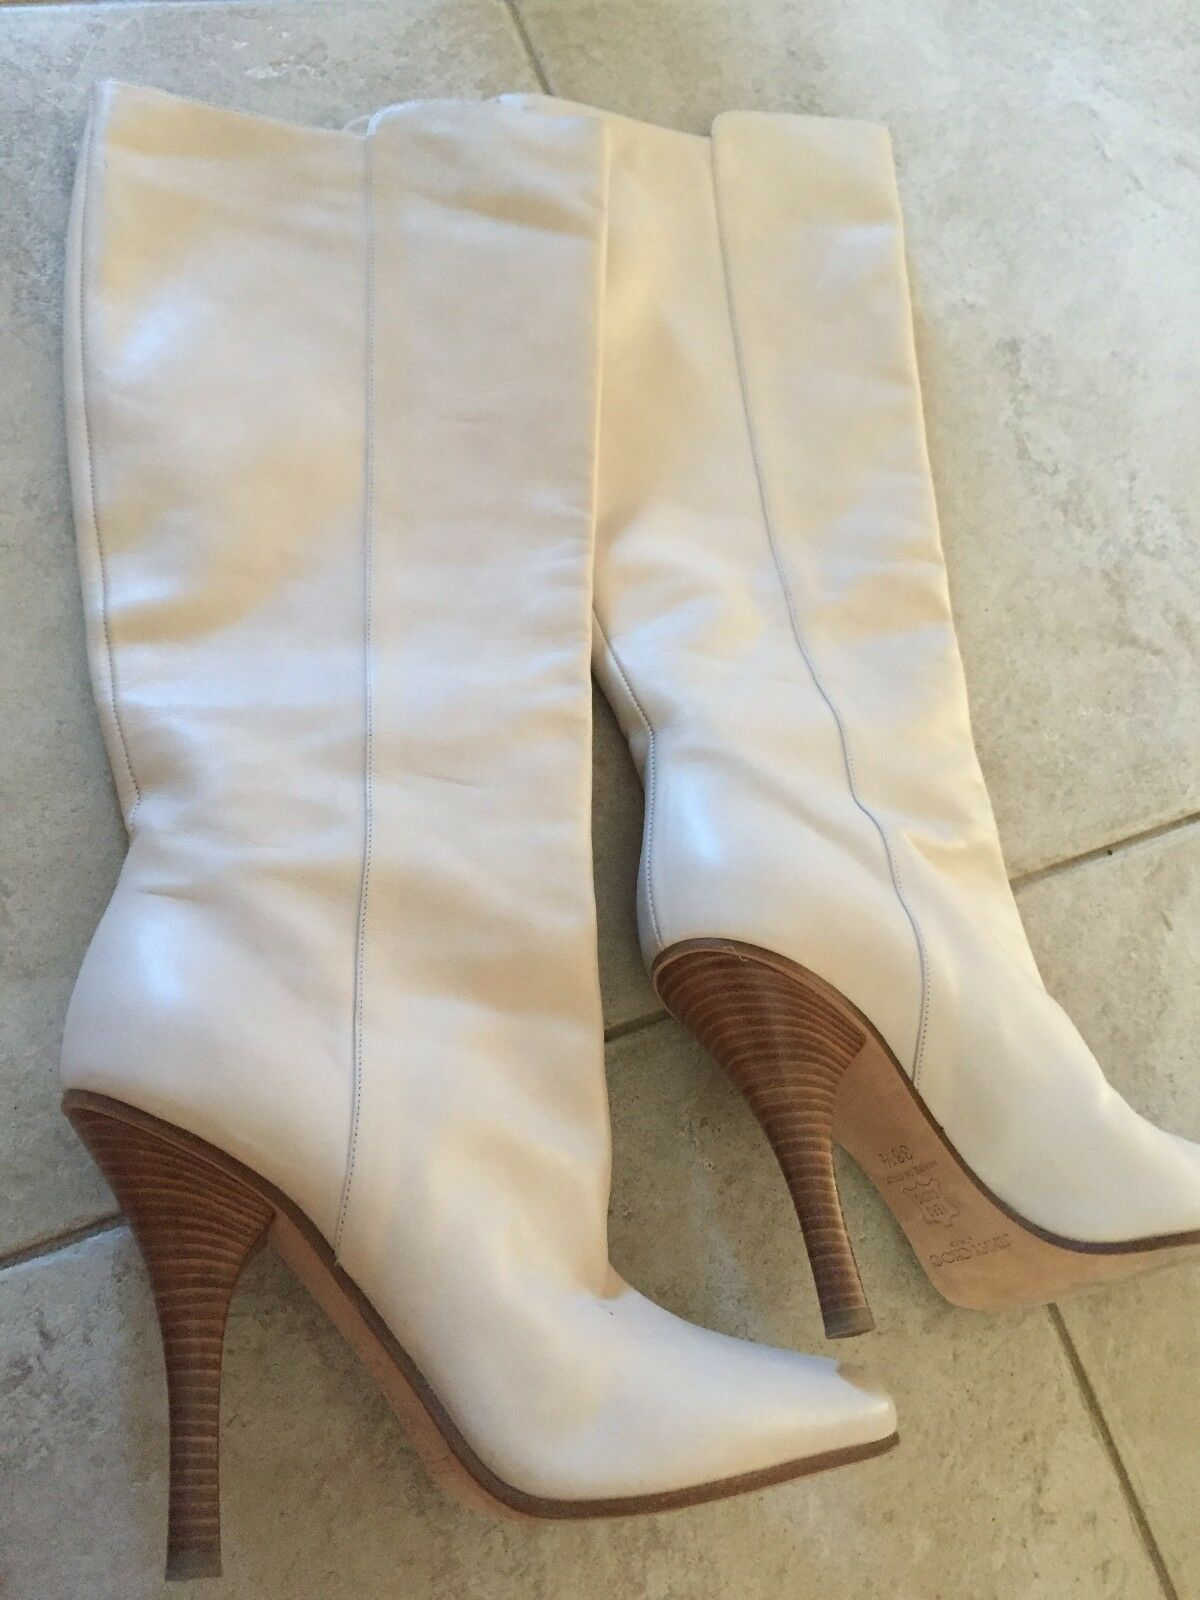 Jimmy Choo Bone Leather bottes - Taille Taille Taille 38.5 (US8.5) - Worn Once fb5e62